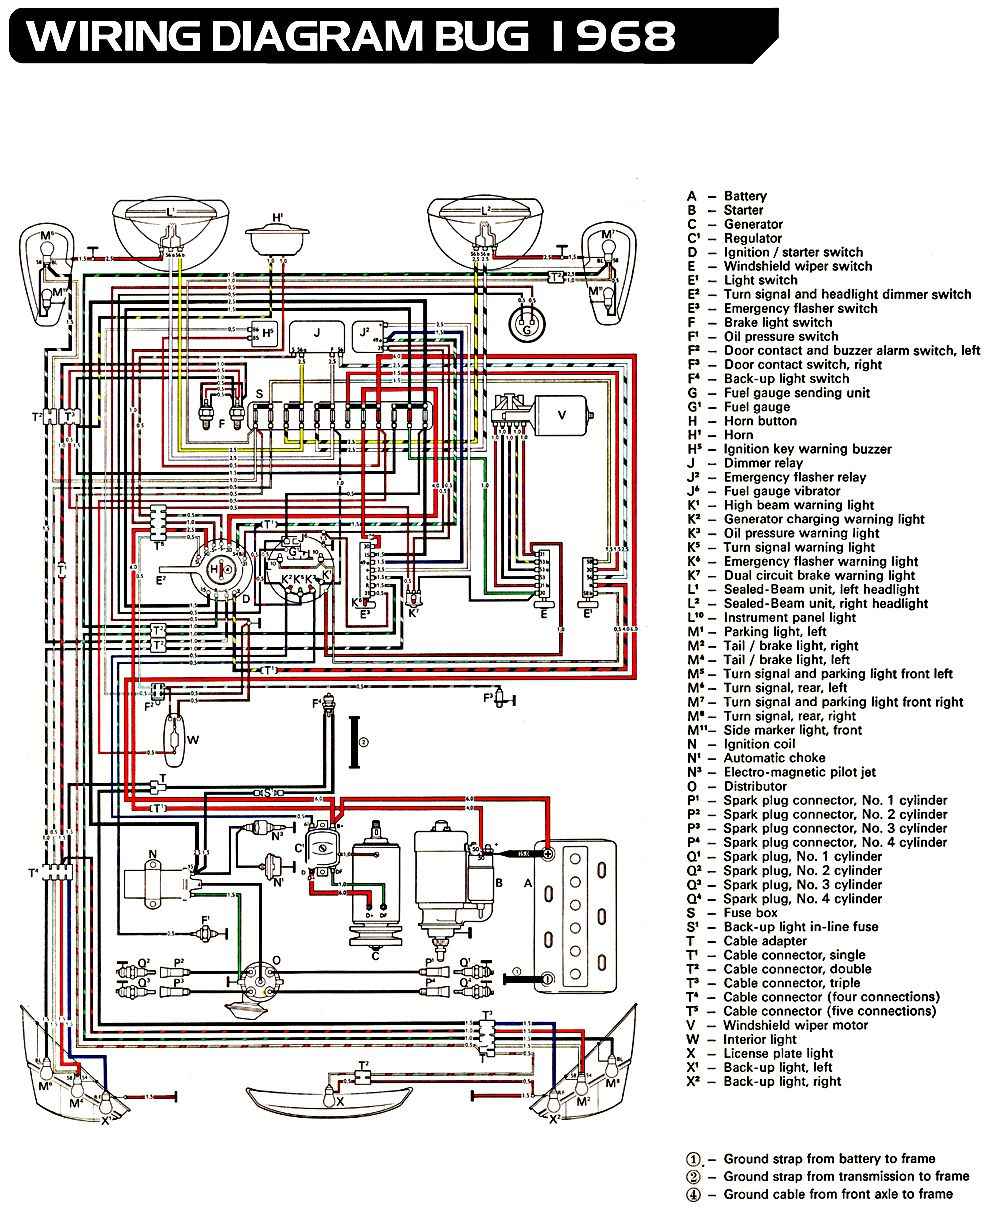 1965 vw bug fuse block diagram wiring diagram used 1965 vw bug fuse block diagram [ 996 x 1211 Pixel ]